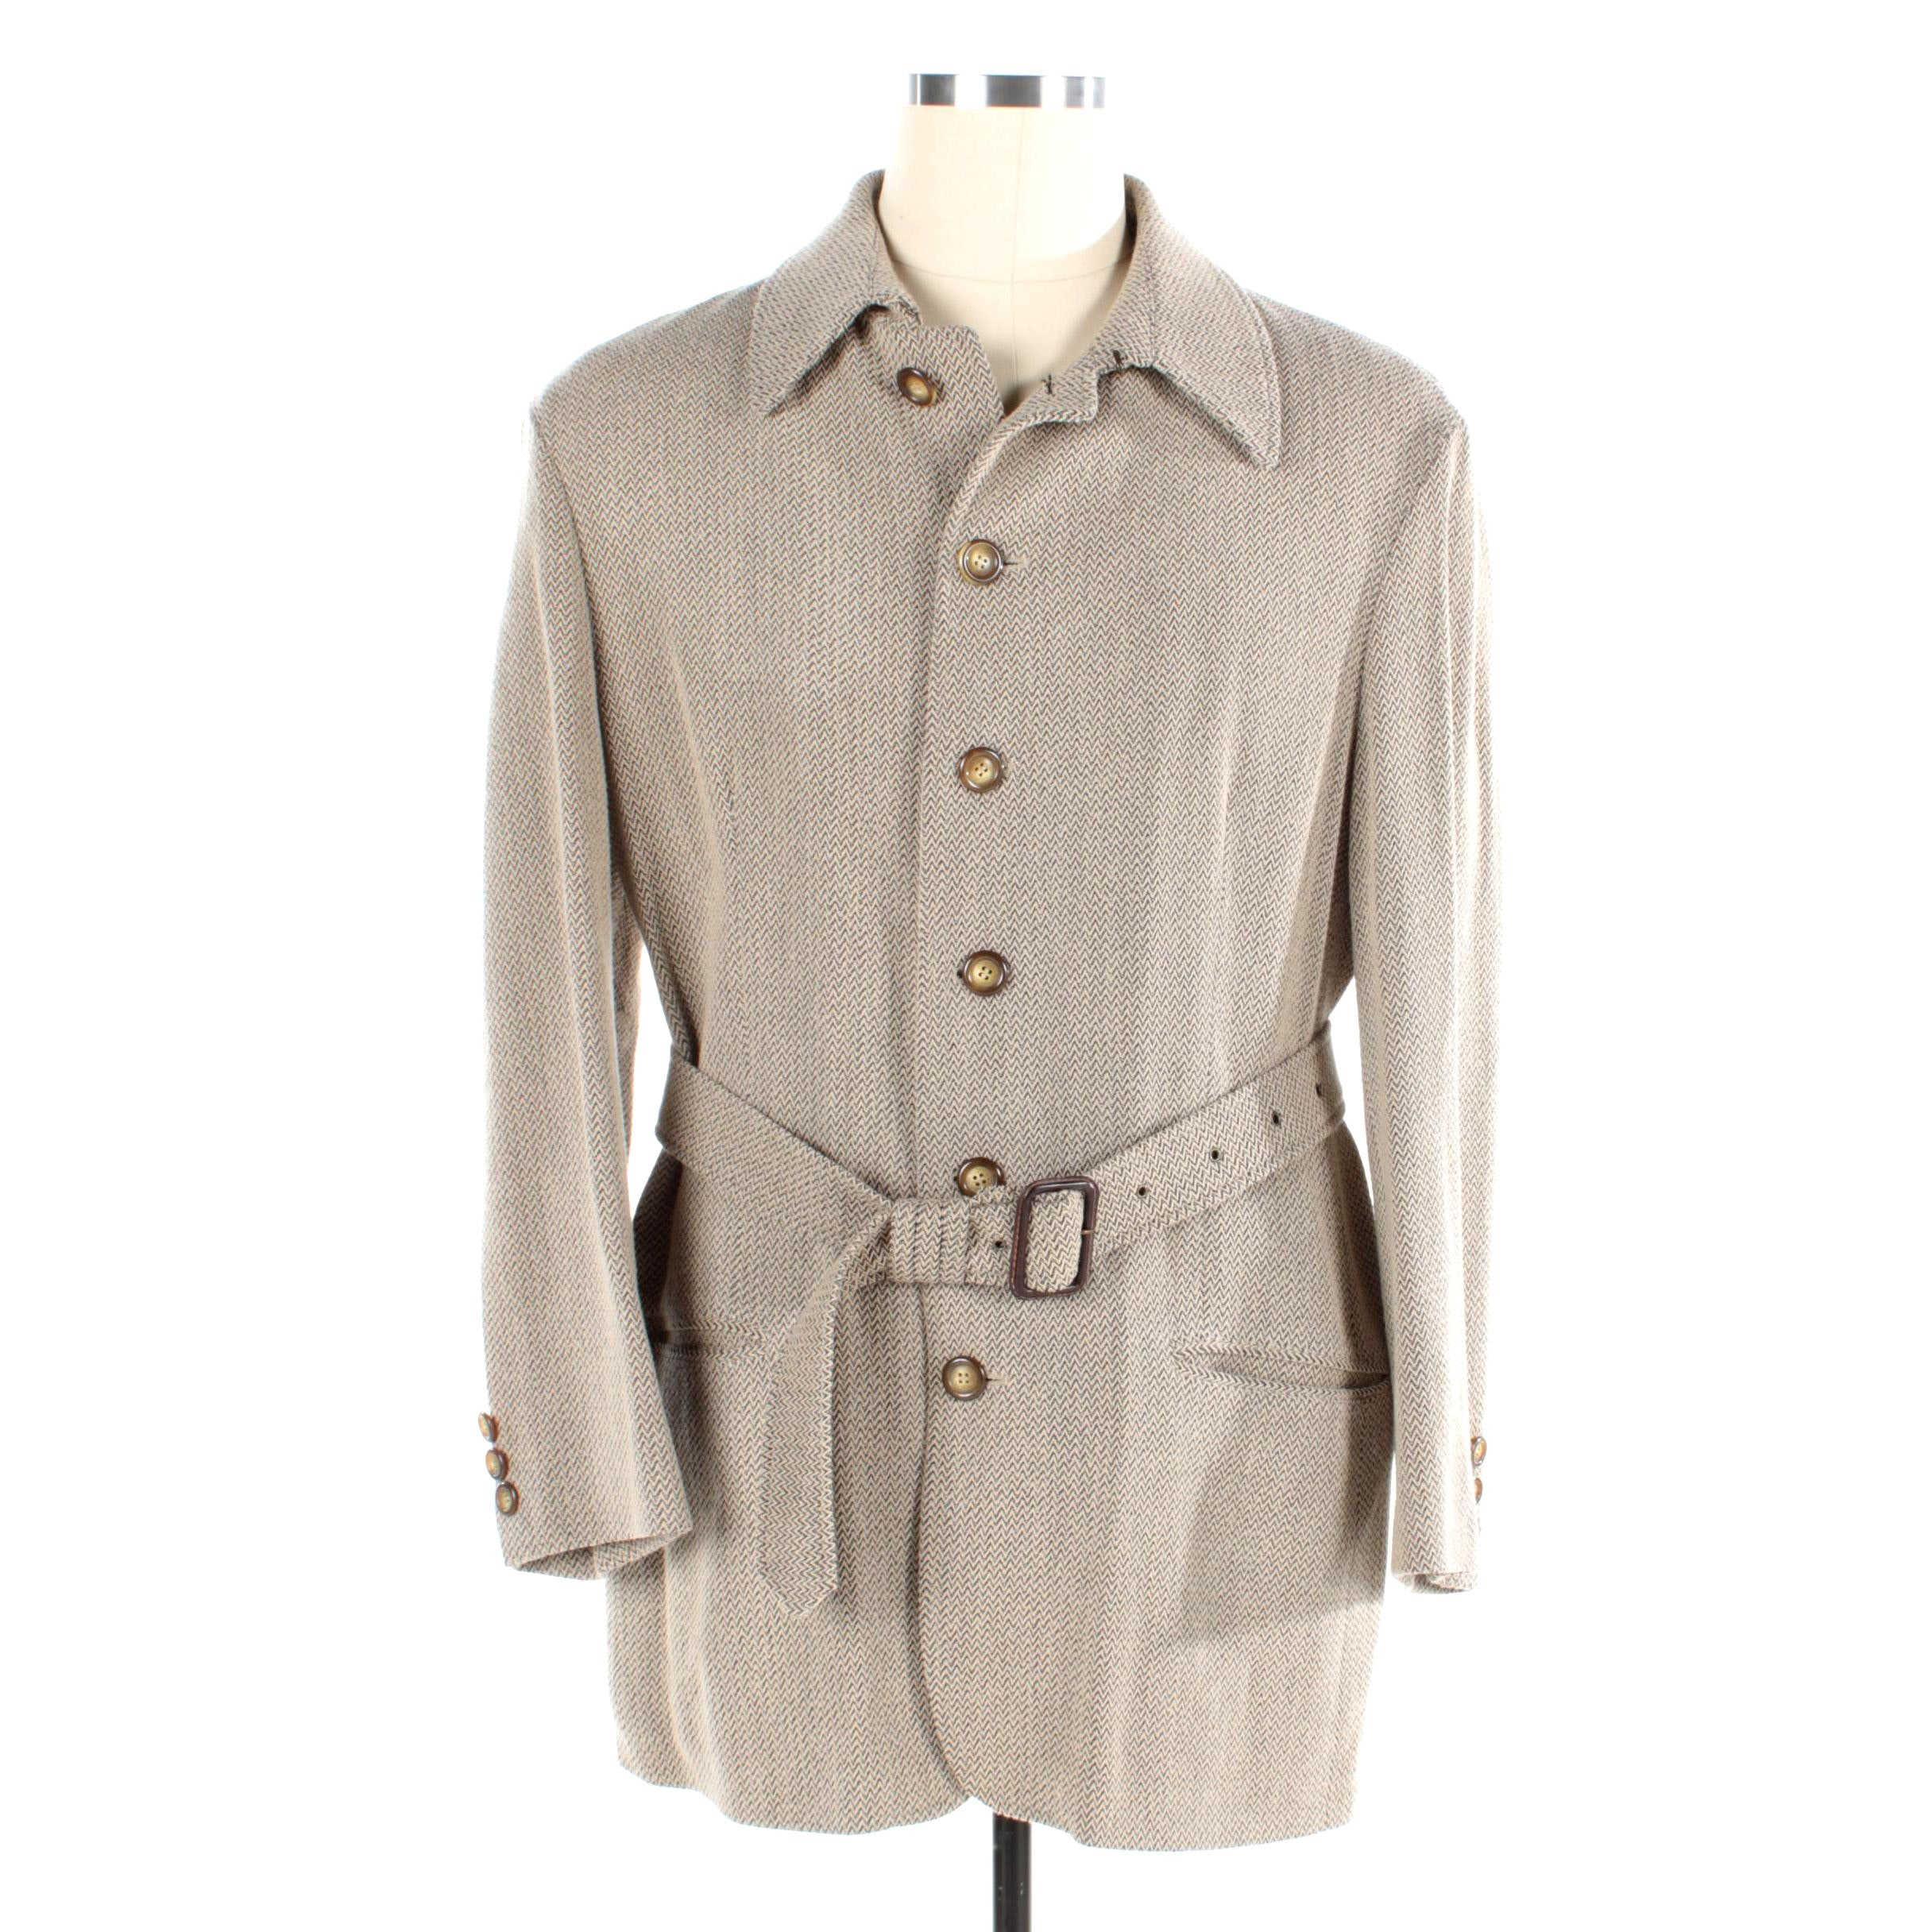 Men's Giorgio Armani Wool Blend Belted Jacket